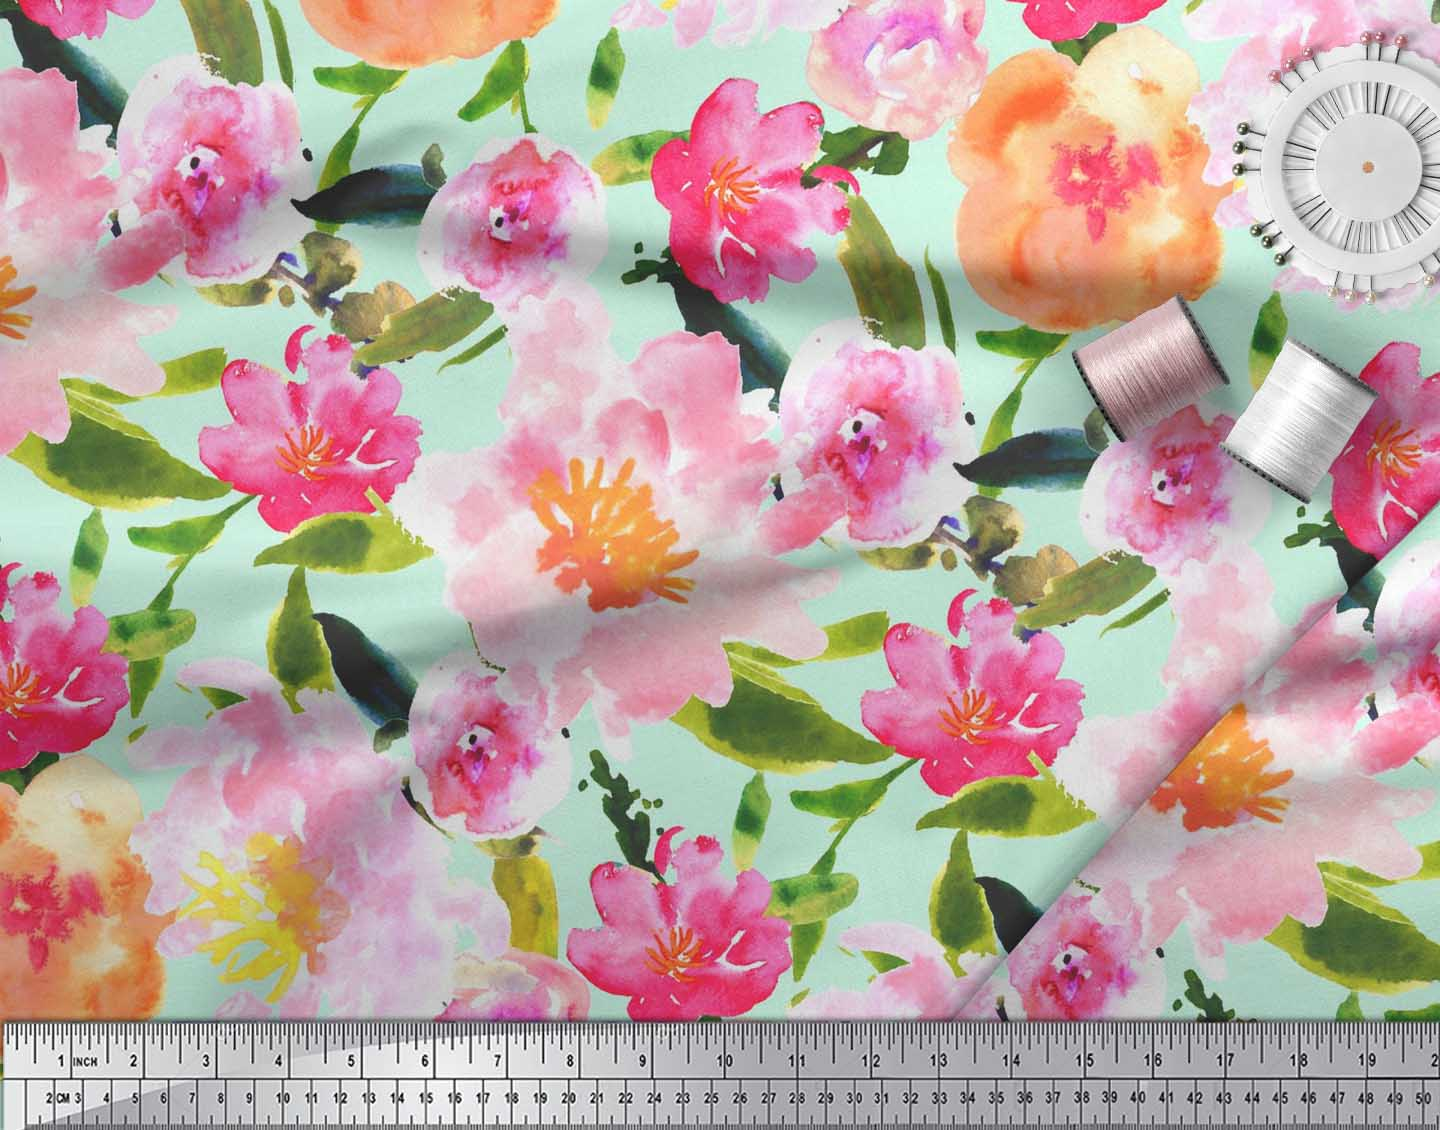 Soimoi-Cotton-Poplin-Fabric-Flower-amp-Leaves-Watercolor-Printed-Craft-BCQ thumbnail 4